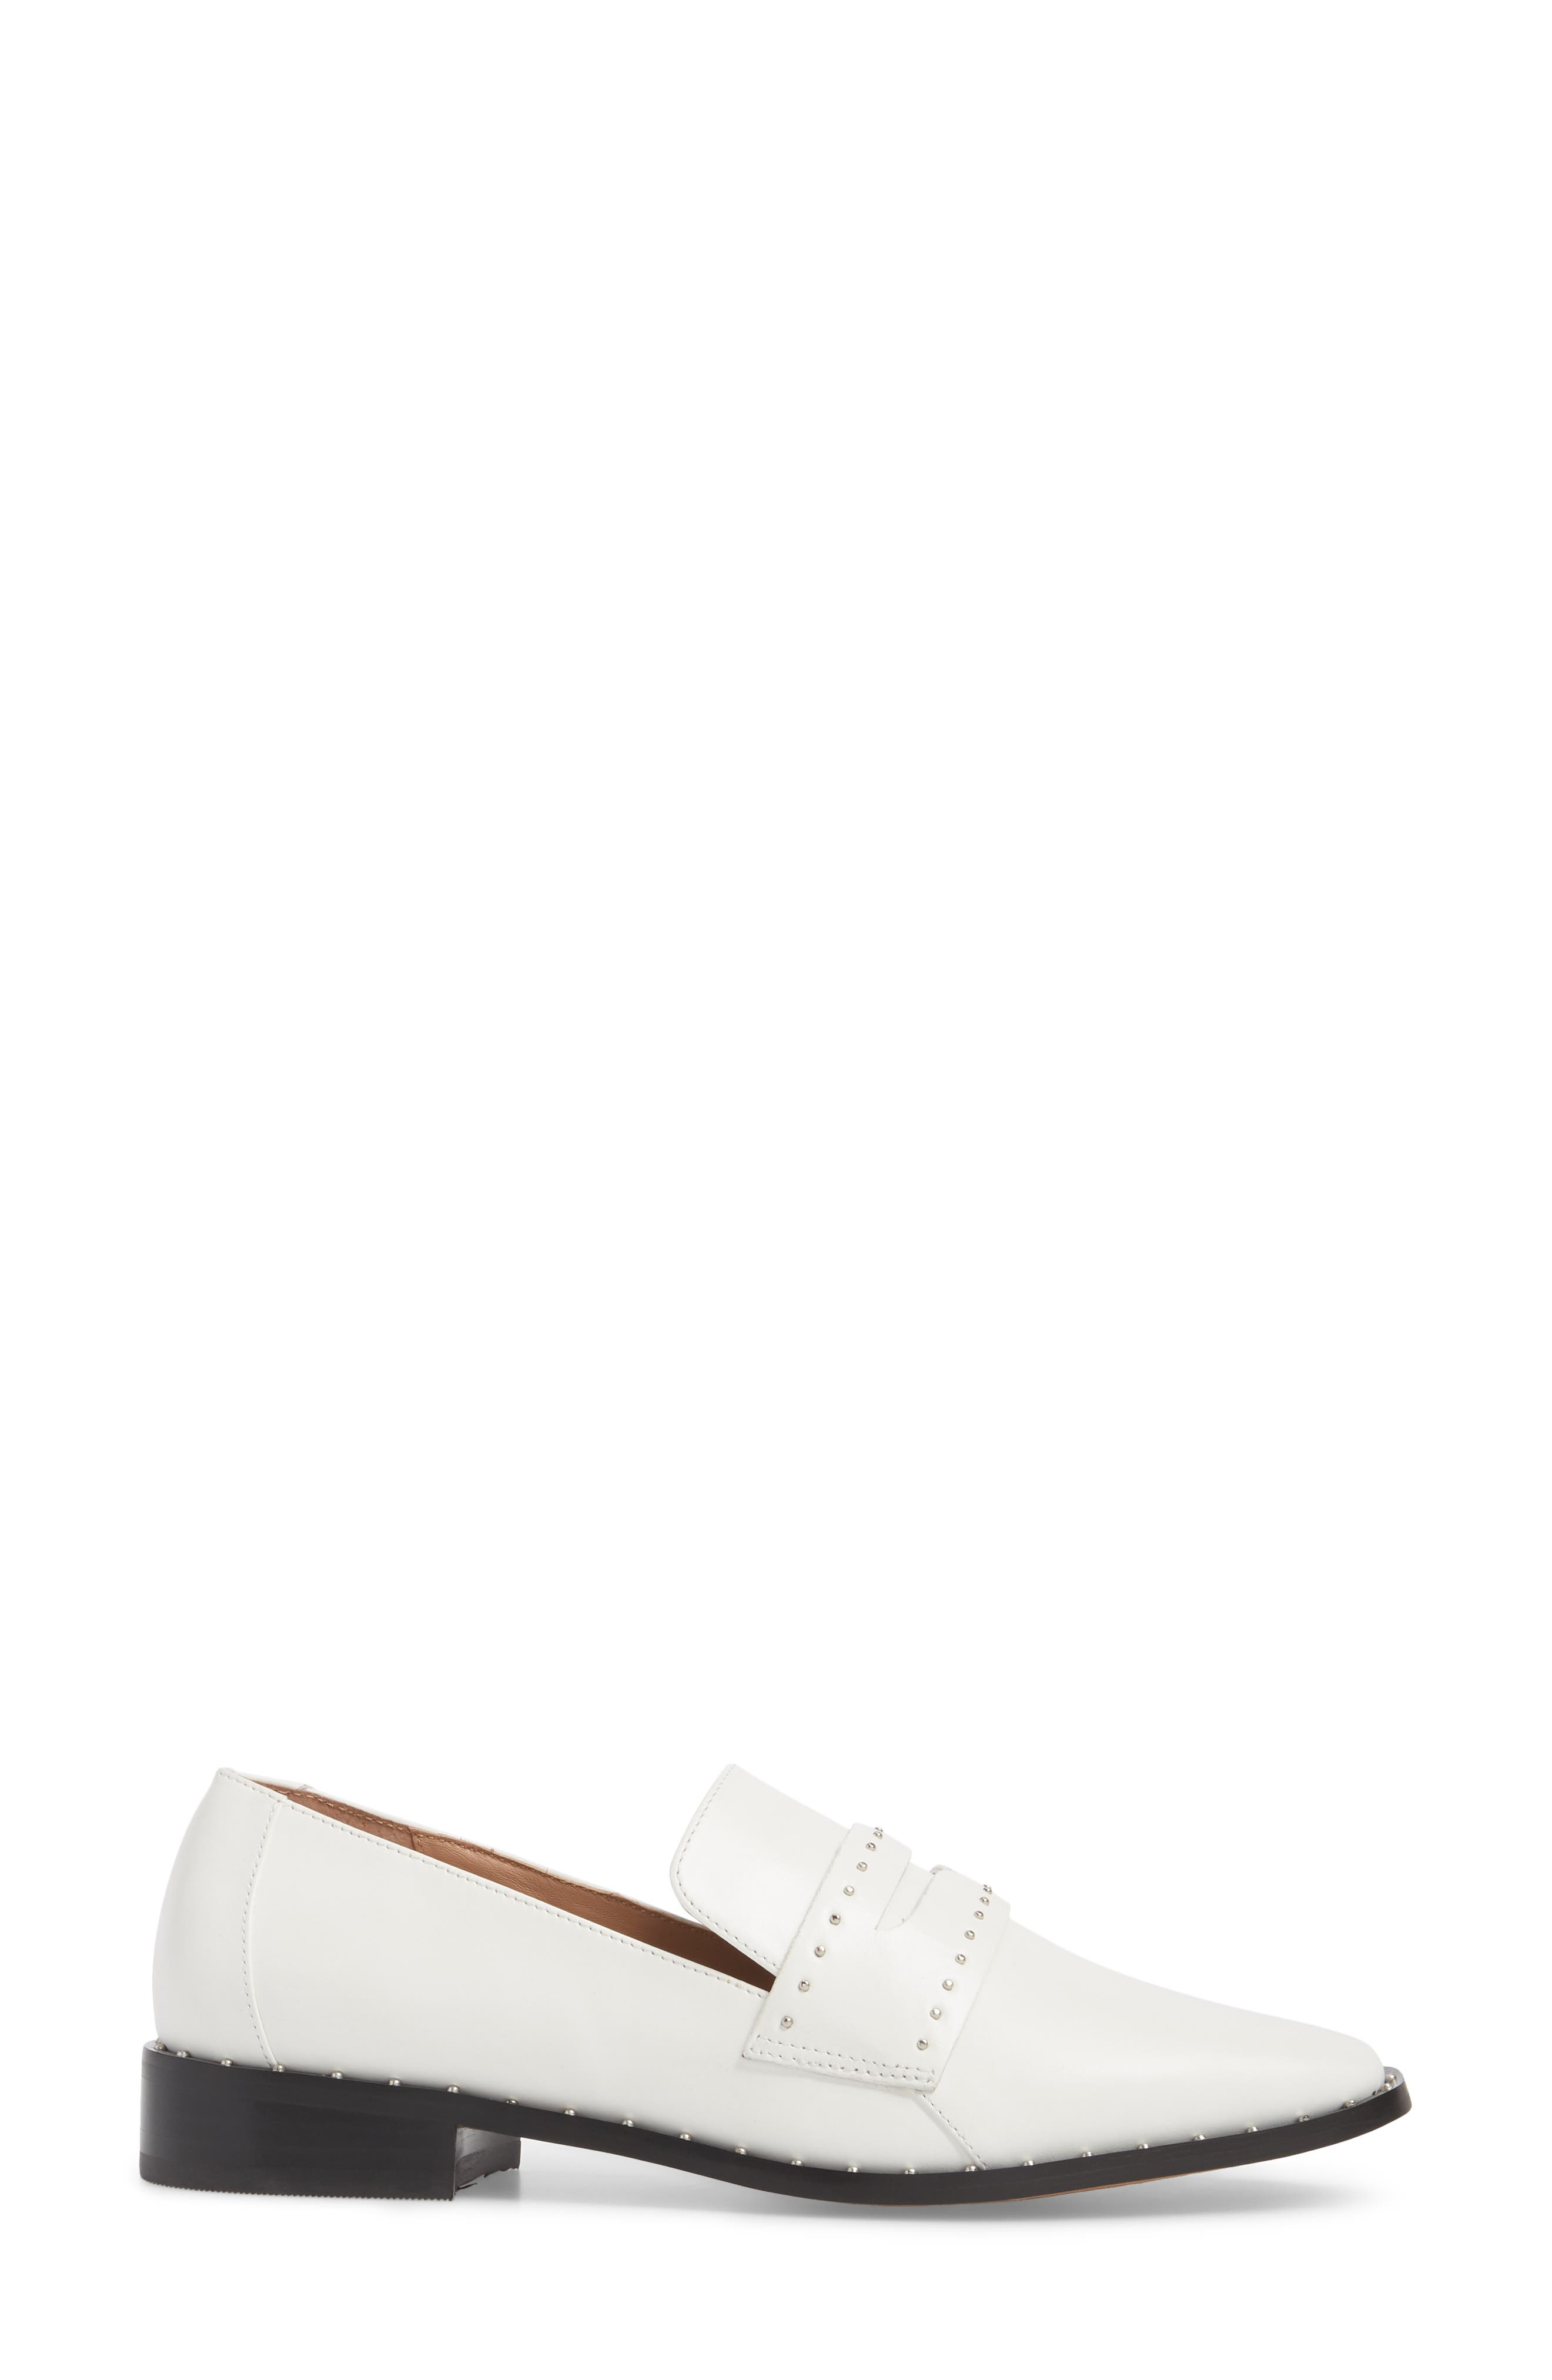 Tara Penny Loafer,                             Alternate thumbnail 3, color,                             Off White Leather